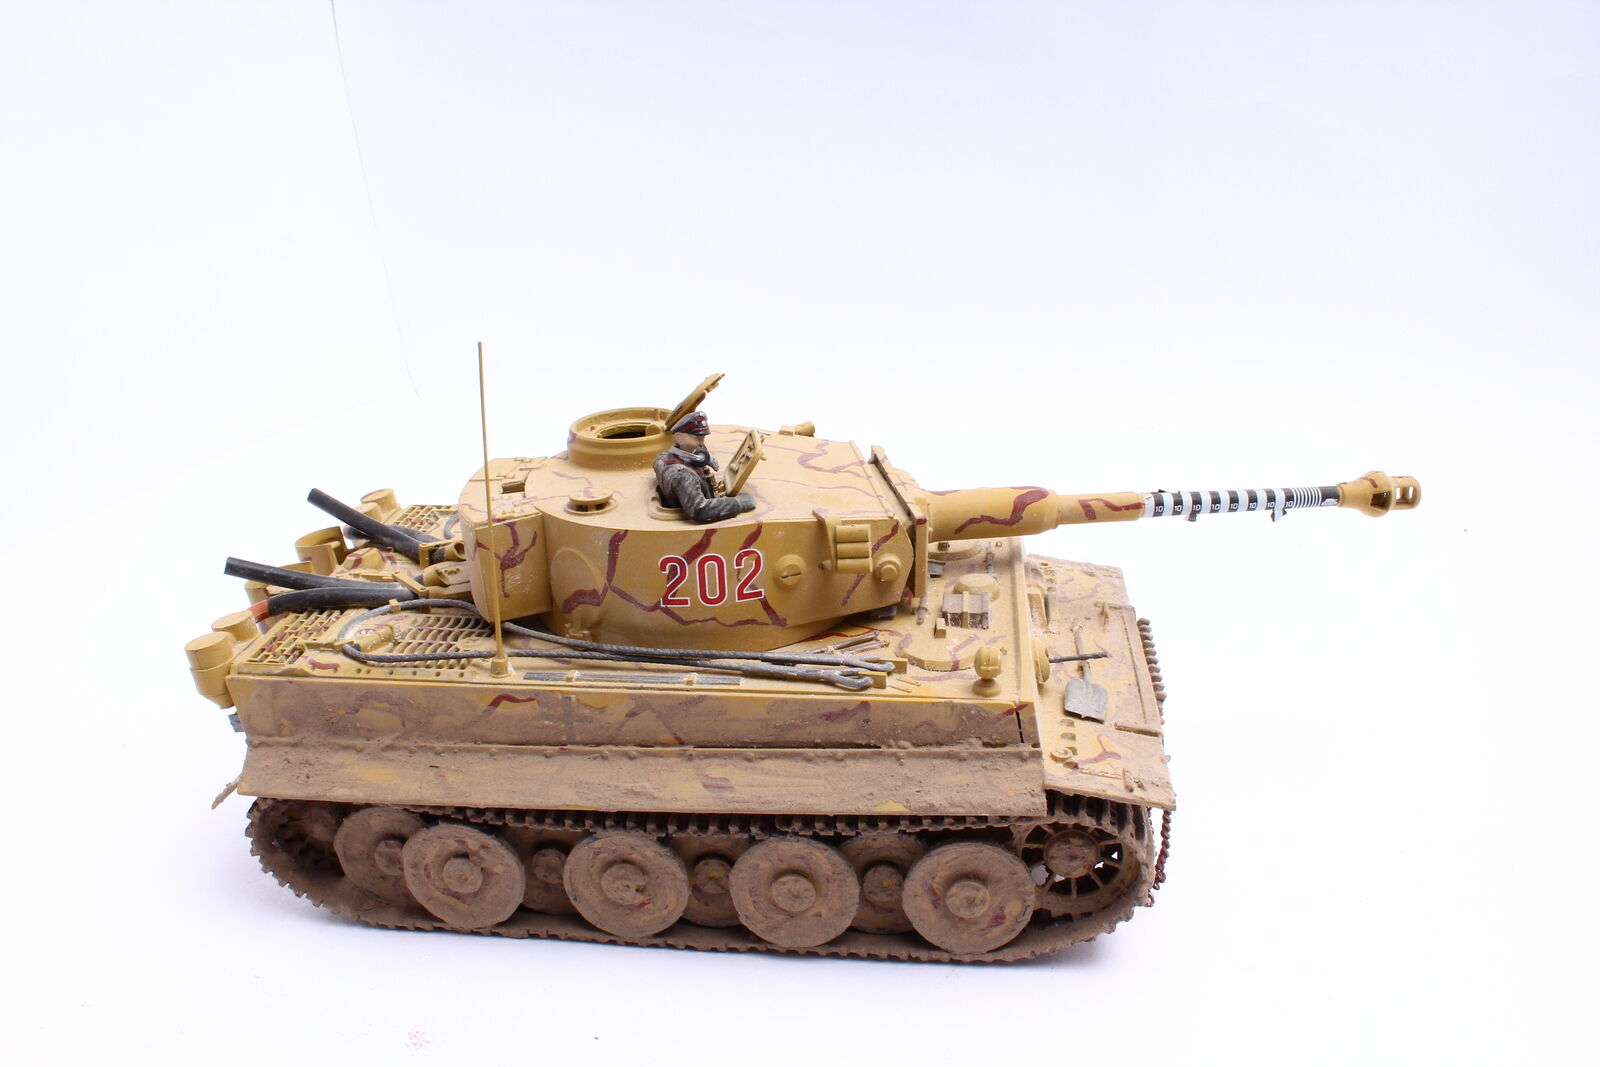 Tank means war VI TIGER AND (SD. Auto 181) 2. wk 1 3 5